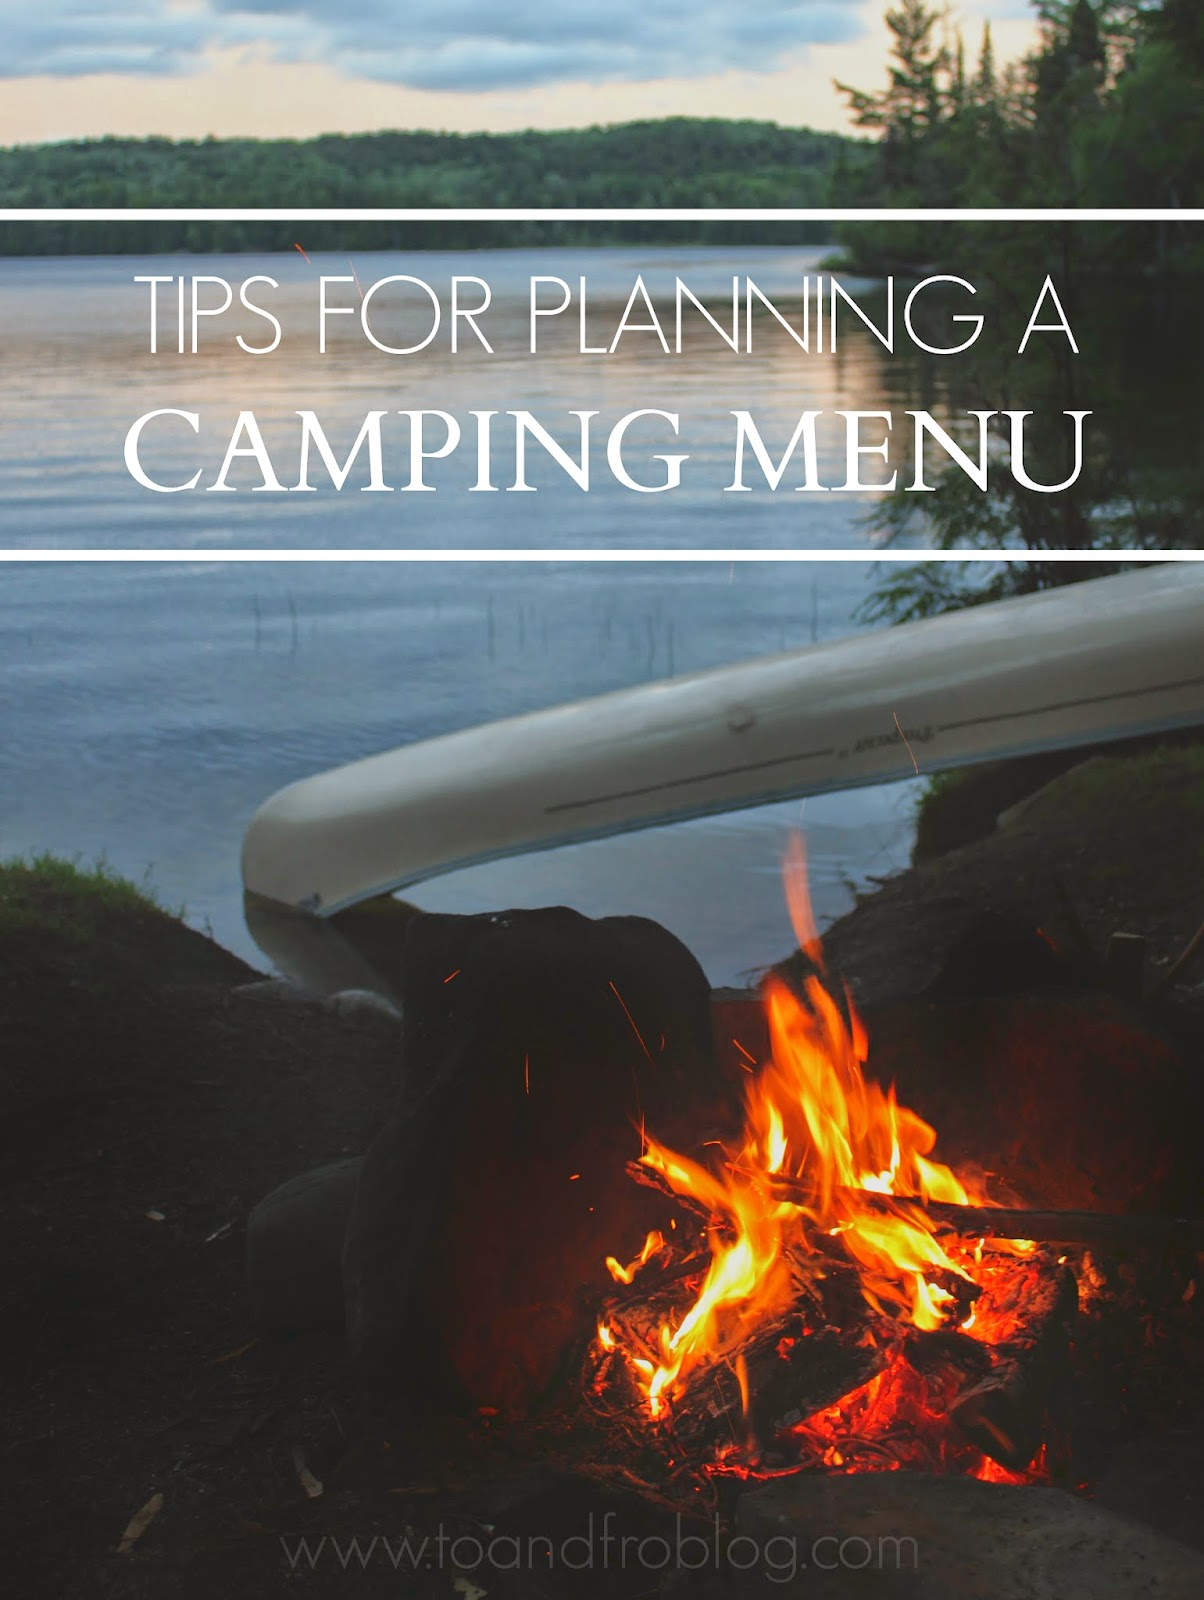 tips for camping menu planning